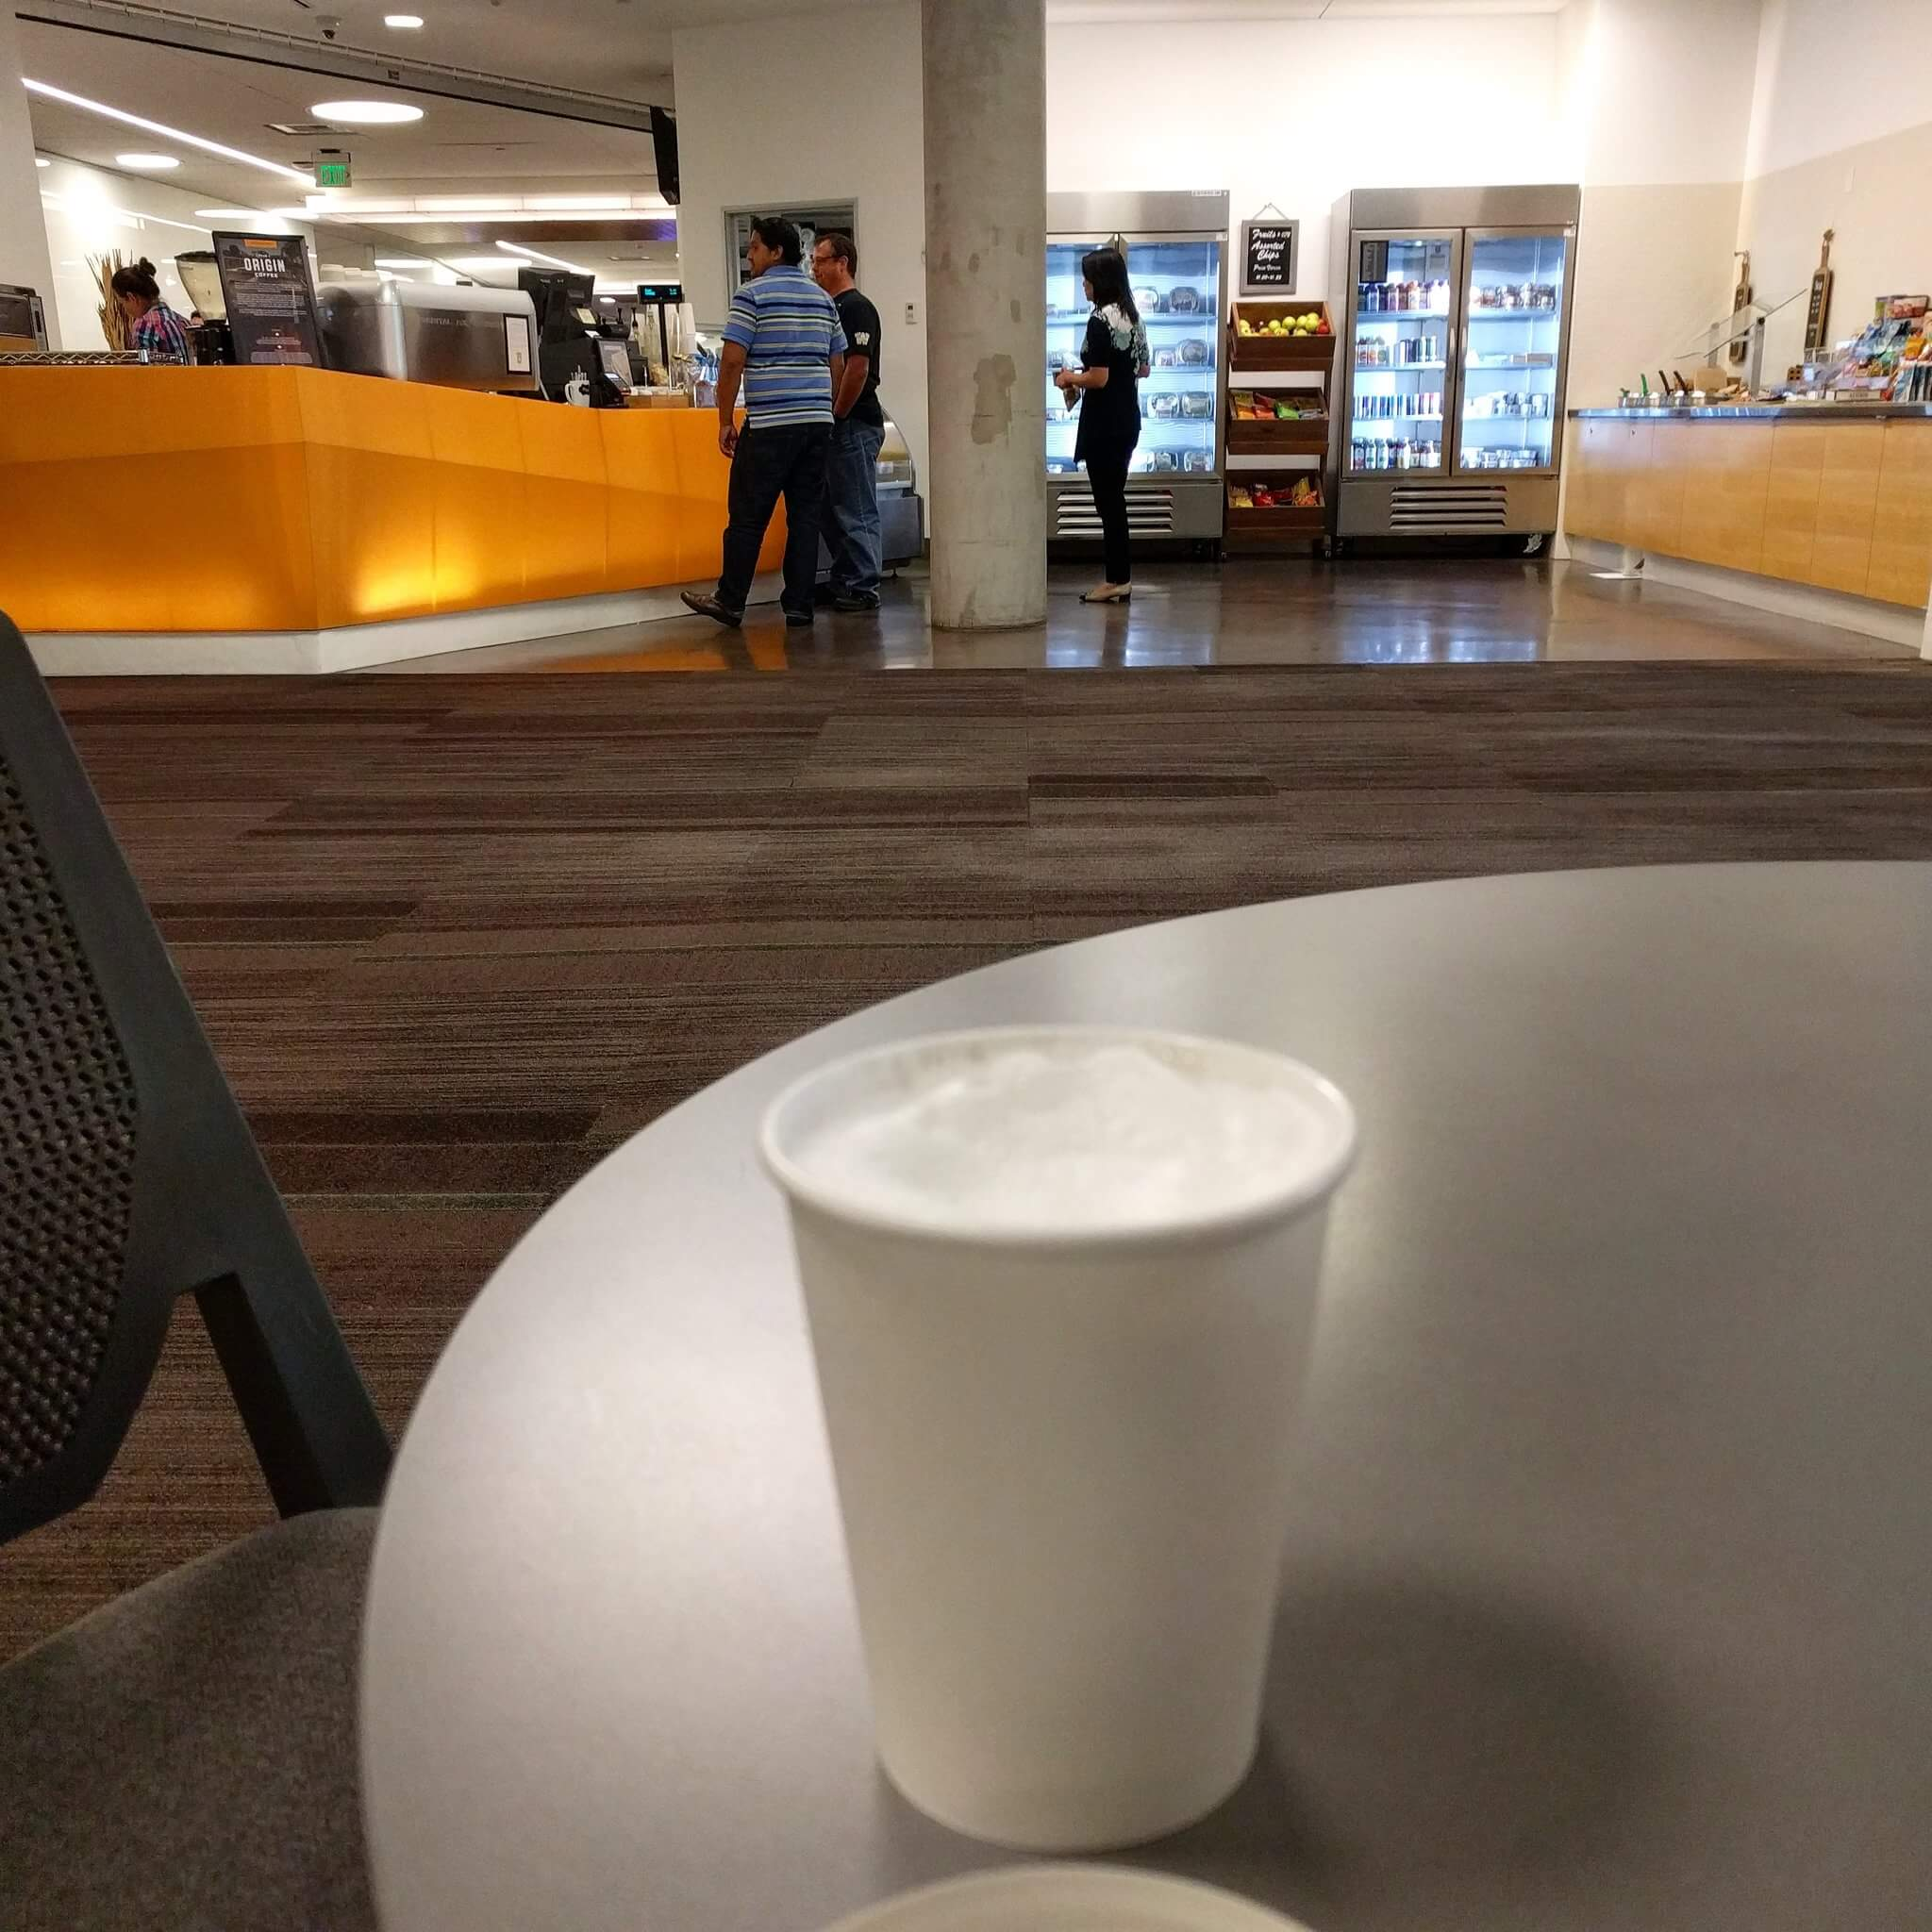 Cappuccino in a paper cup in the foreground, coffee bar and drink cases in the far background, a gulf of carpet between us.